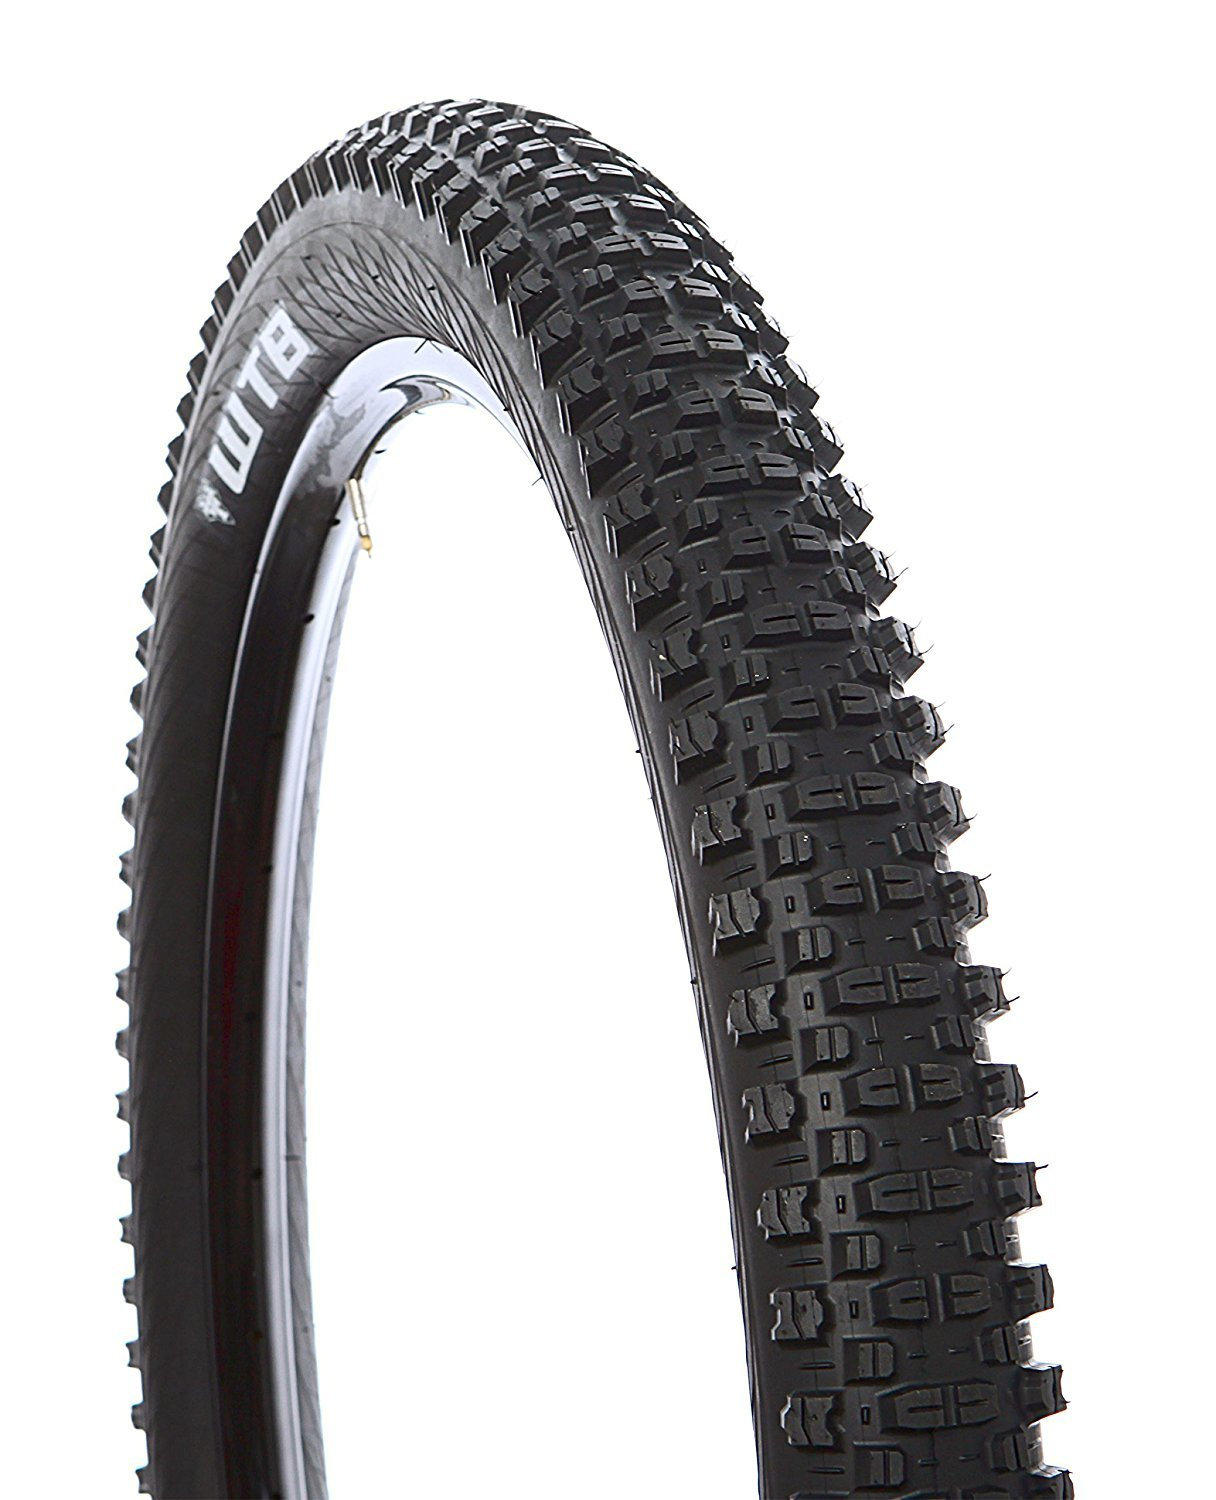 WTB Breakout 2.5 TCS Tough/High Grip Tire 27.5-Inch Black [並行輸入品] B078BQZ1JW